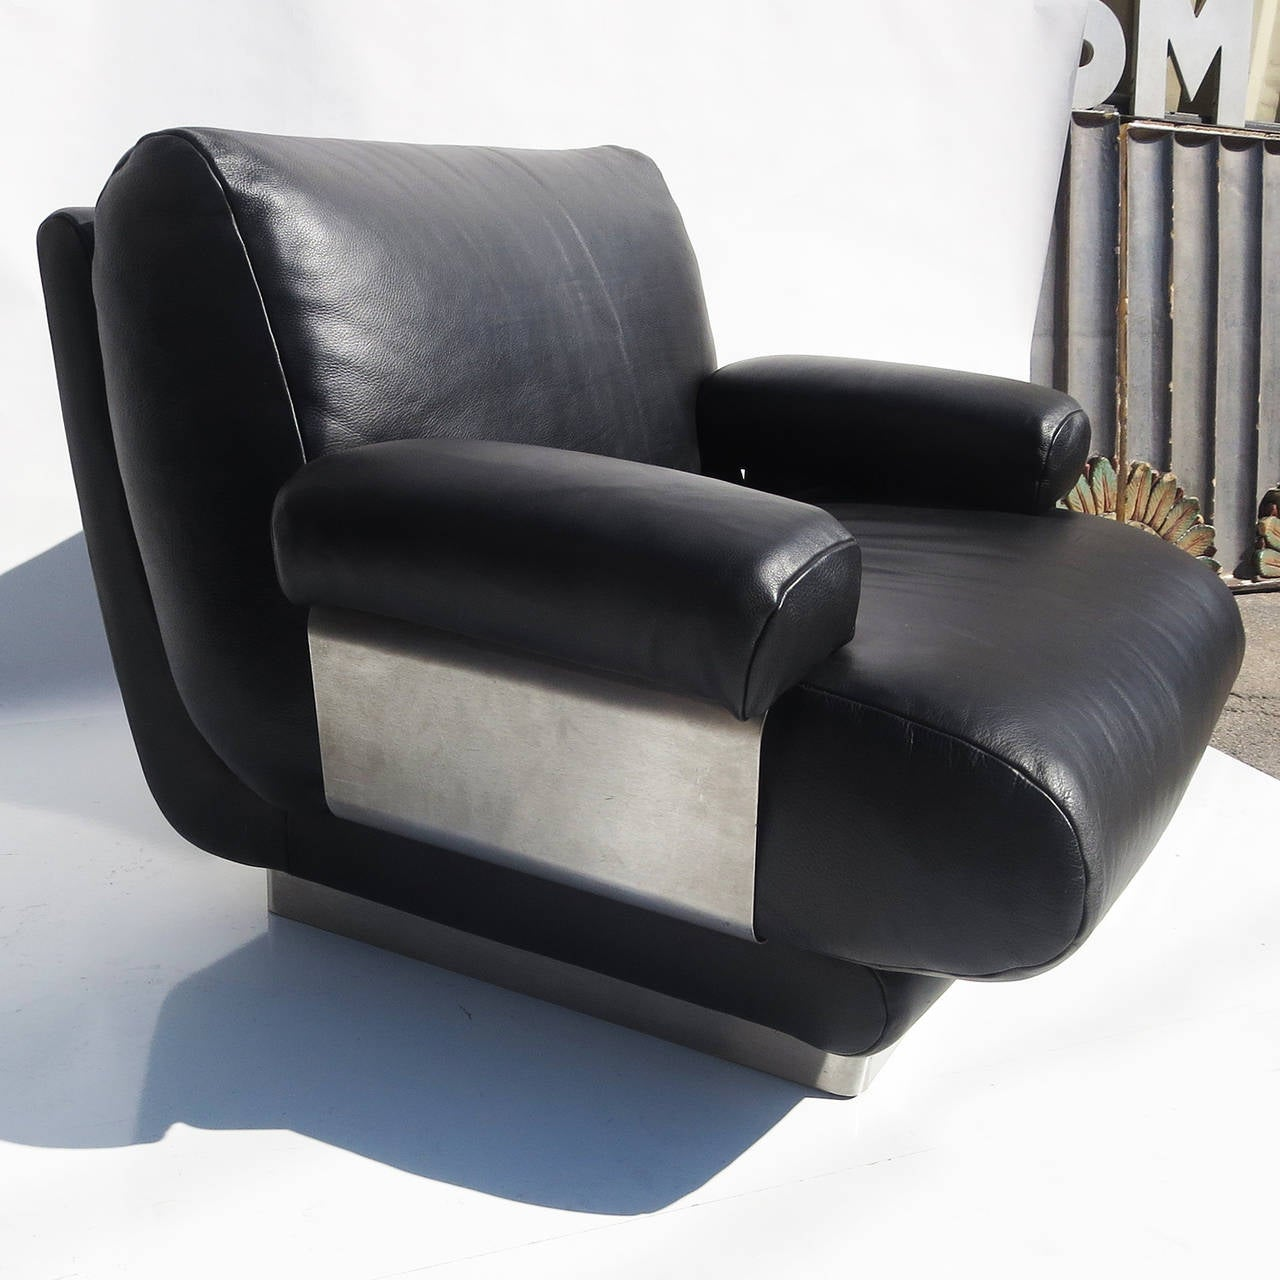 buffalo leather chair table and chairs jacques charpentier club in